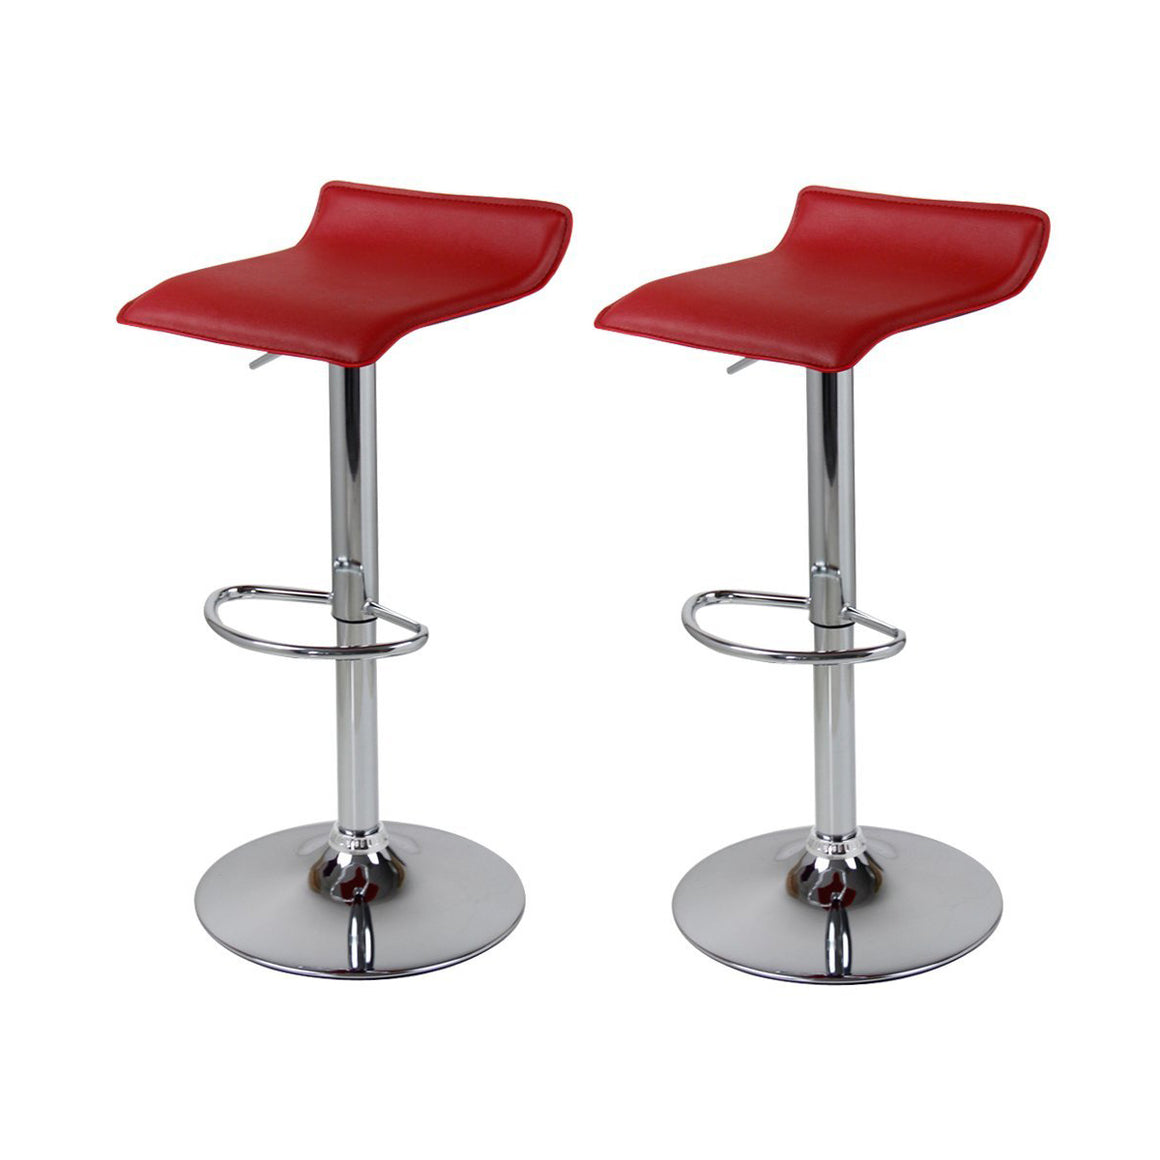 Homefresco Pair of Bar Stools Adjustable Footrest Black Red White (2 Pcs)